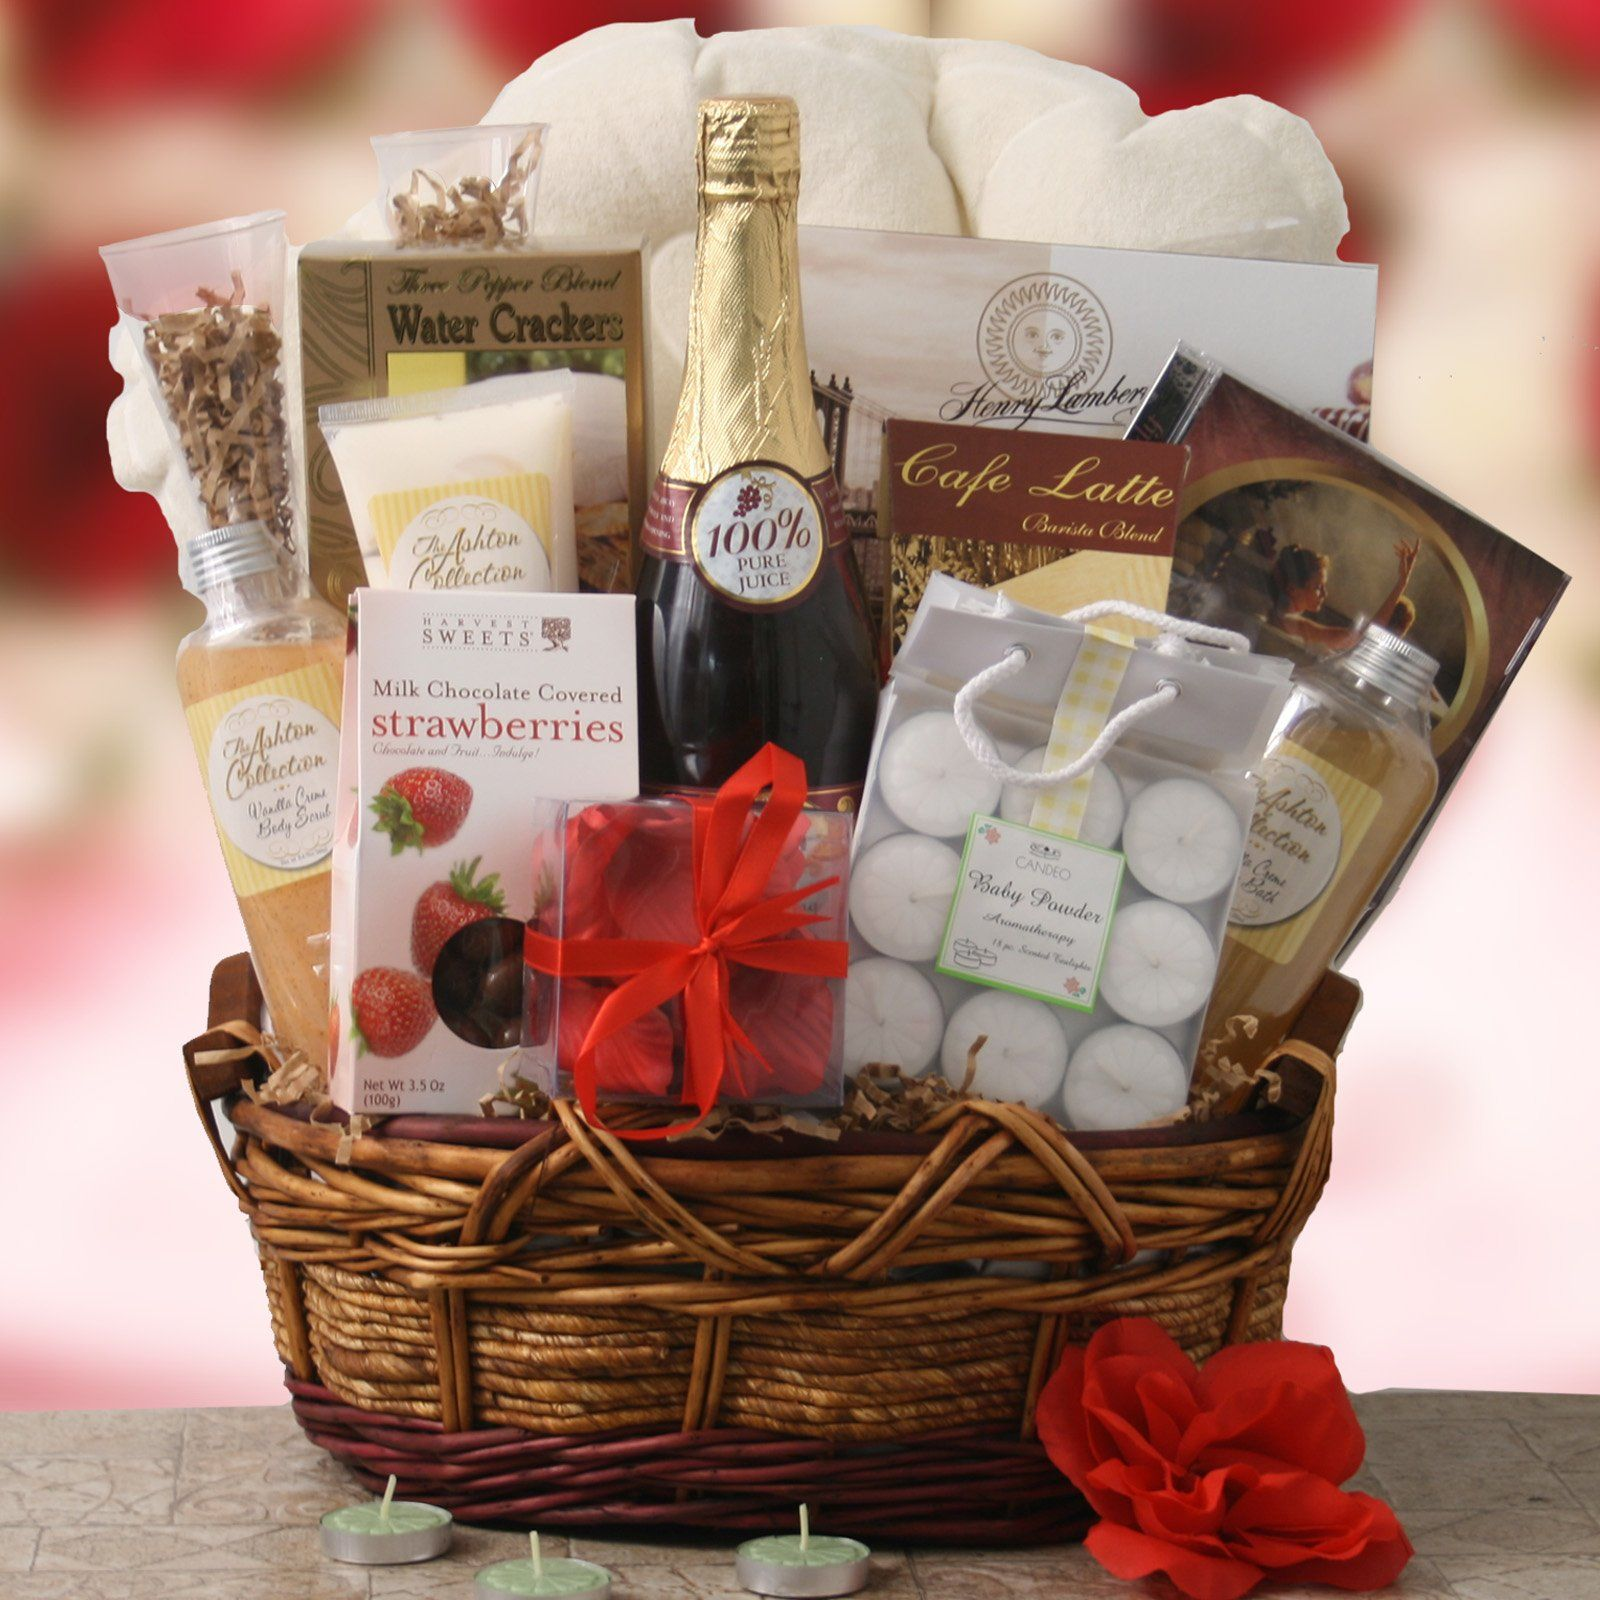 Wedding Night Basket Ideas: Honeymoon Gift Basket Ideas